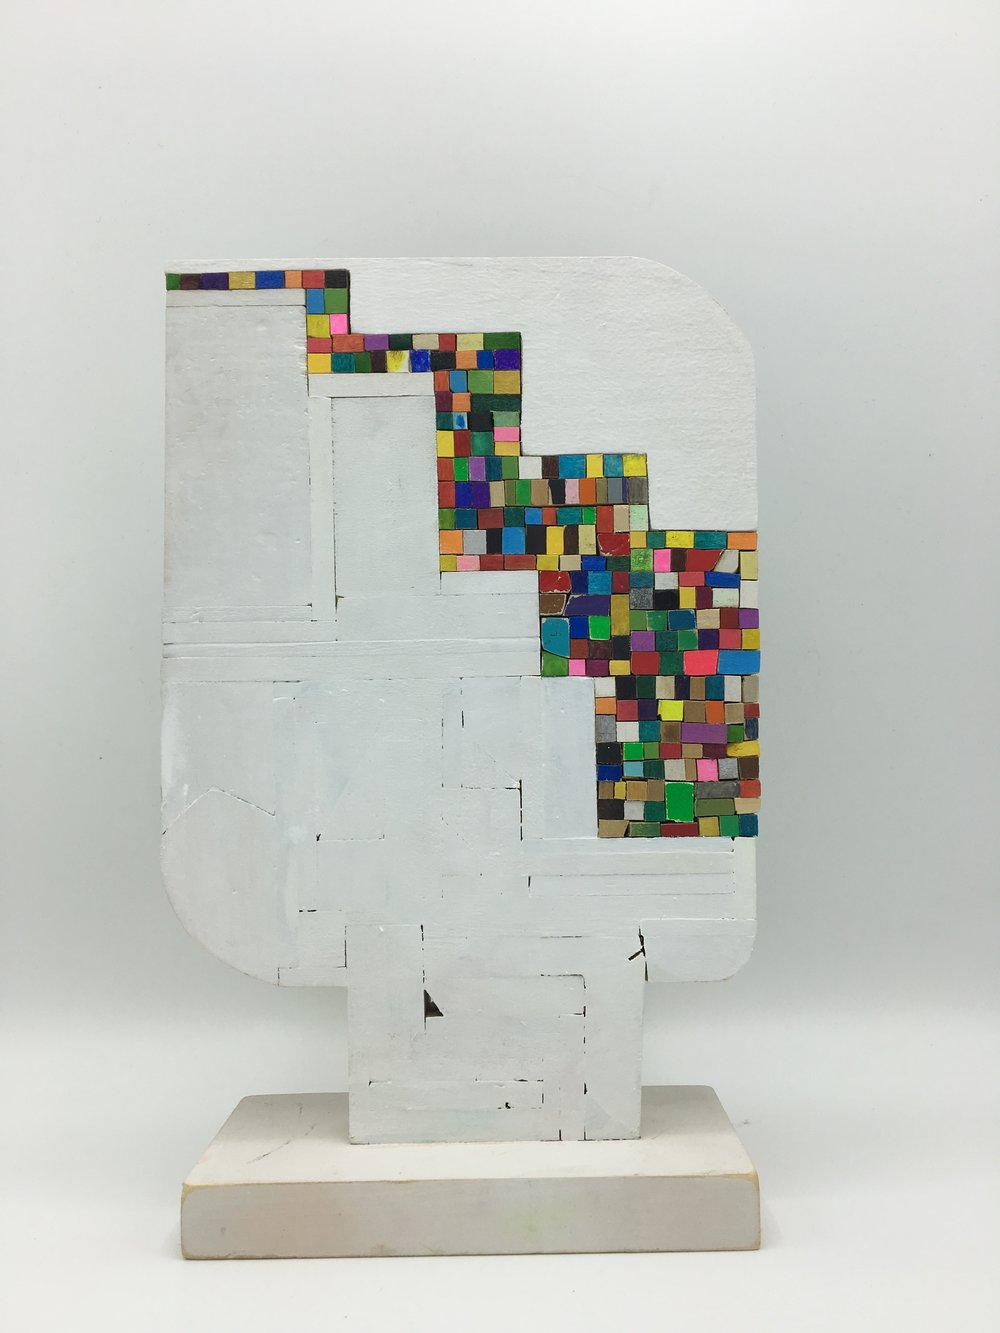 8 Bit, 2016 [private collection New York, NY] Wood, Paint, Colored Pencil, Glue 10 ½ x 6 ½ x 3 in.